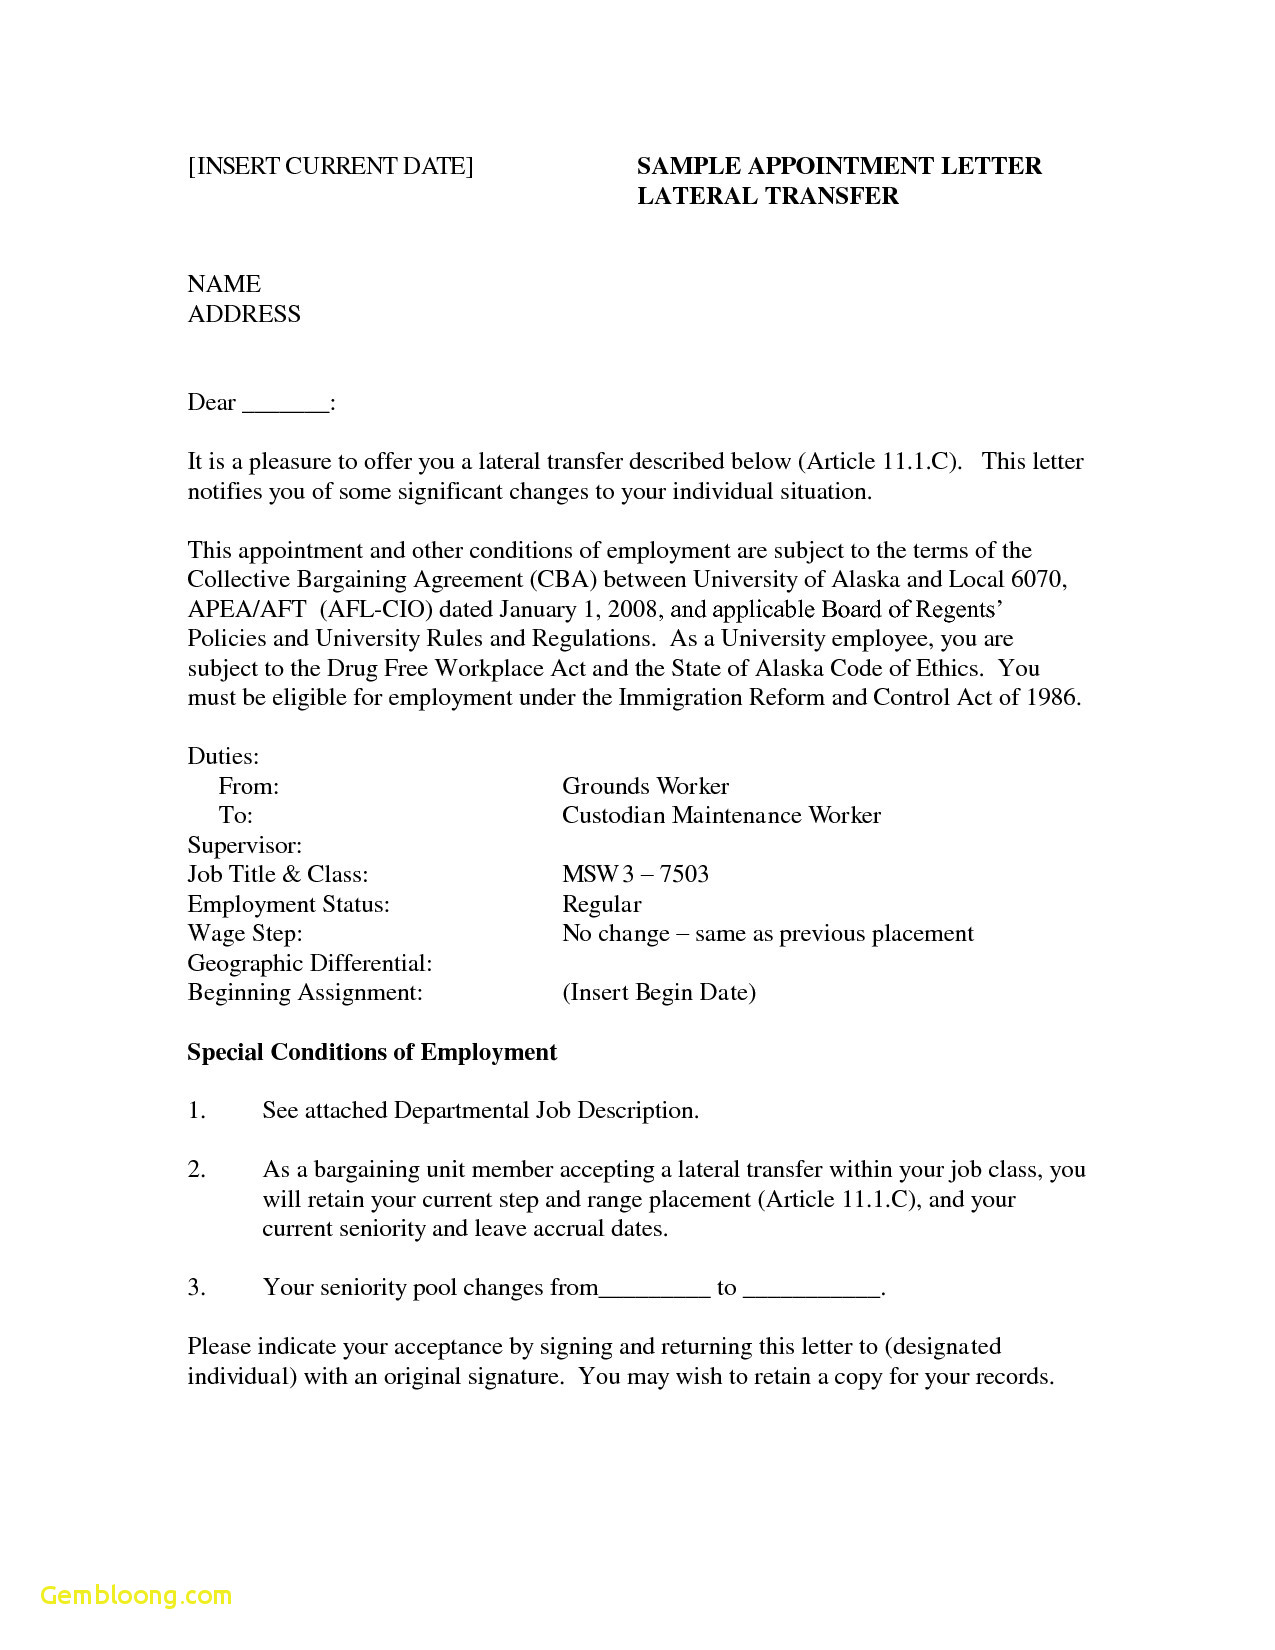 Relocation Cover Letter Template Free - Teaching Resume Cover Letter Free Download Cover Letter Template